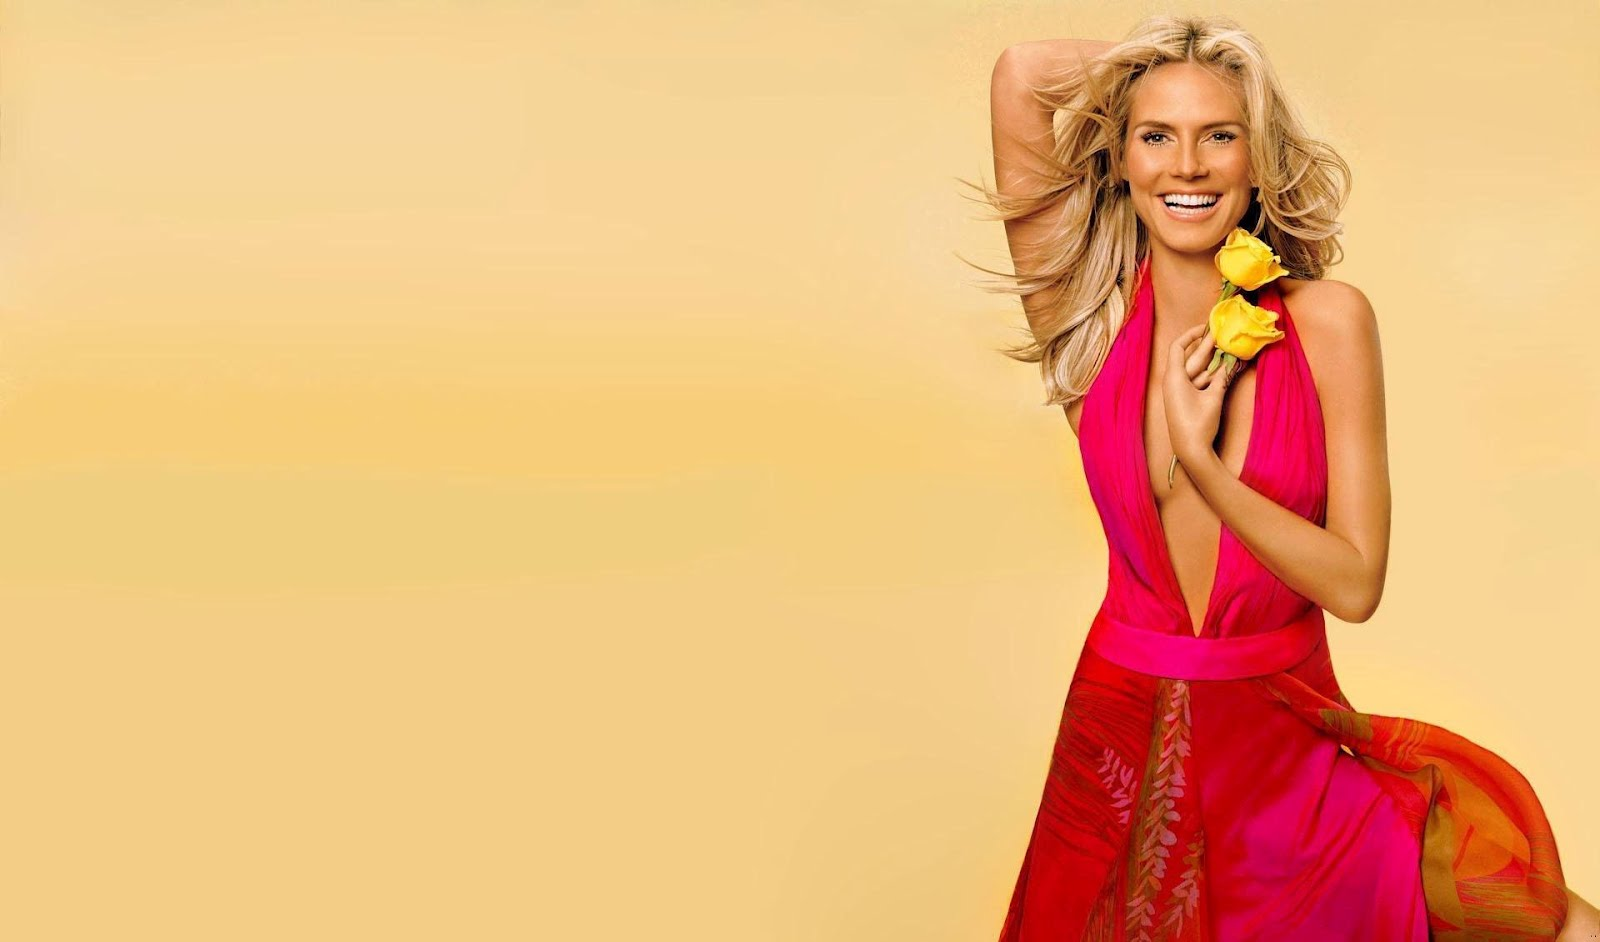 http://2.bp.blogspot.com/-fzIA2R-bScQ/Txw73A4_yWI/AAAAAAAANt8/-0E0ZaM4slc/s1600/Heidi_Klum_Hd_wallpapers_dress.jpg